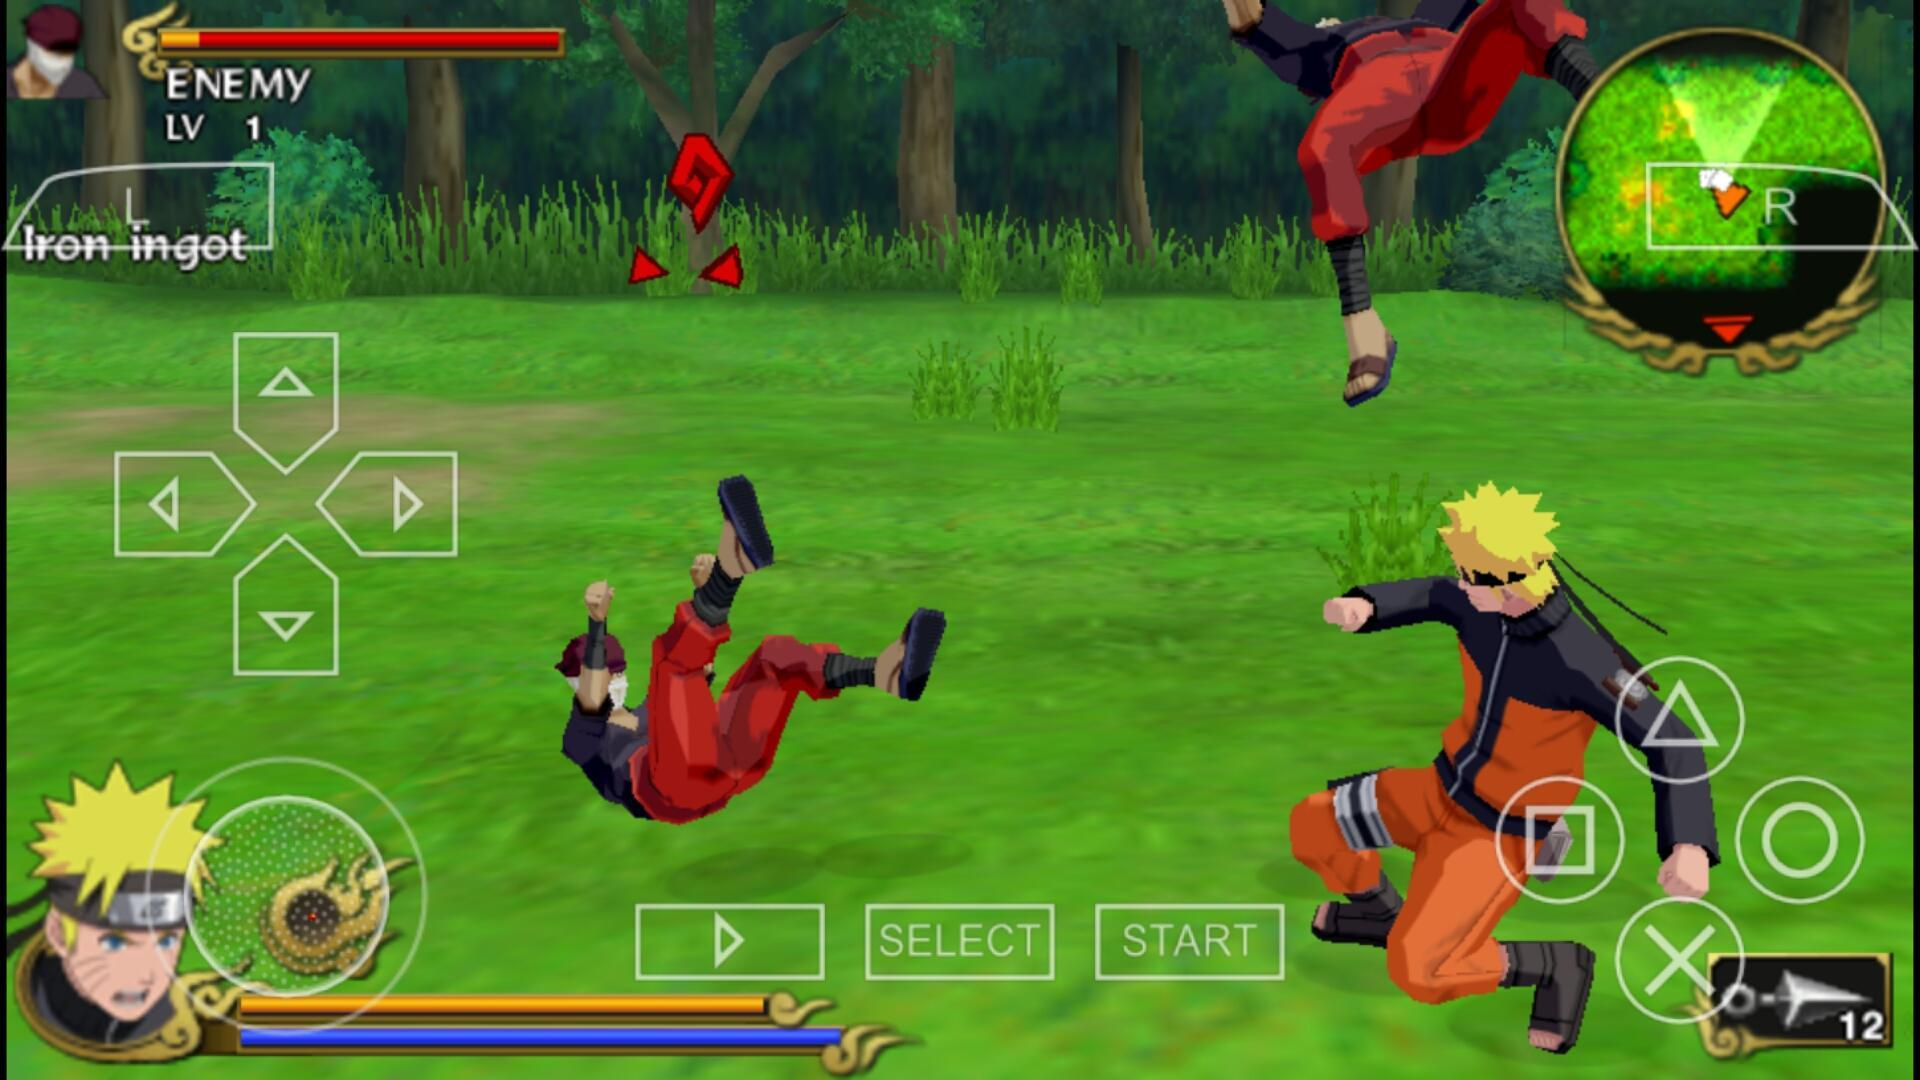 Naruto Games: Ultimate Ninja Shippuden Storm 4 for Android